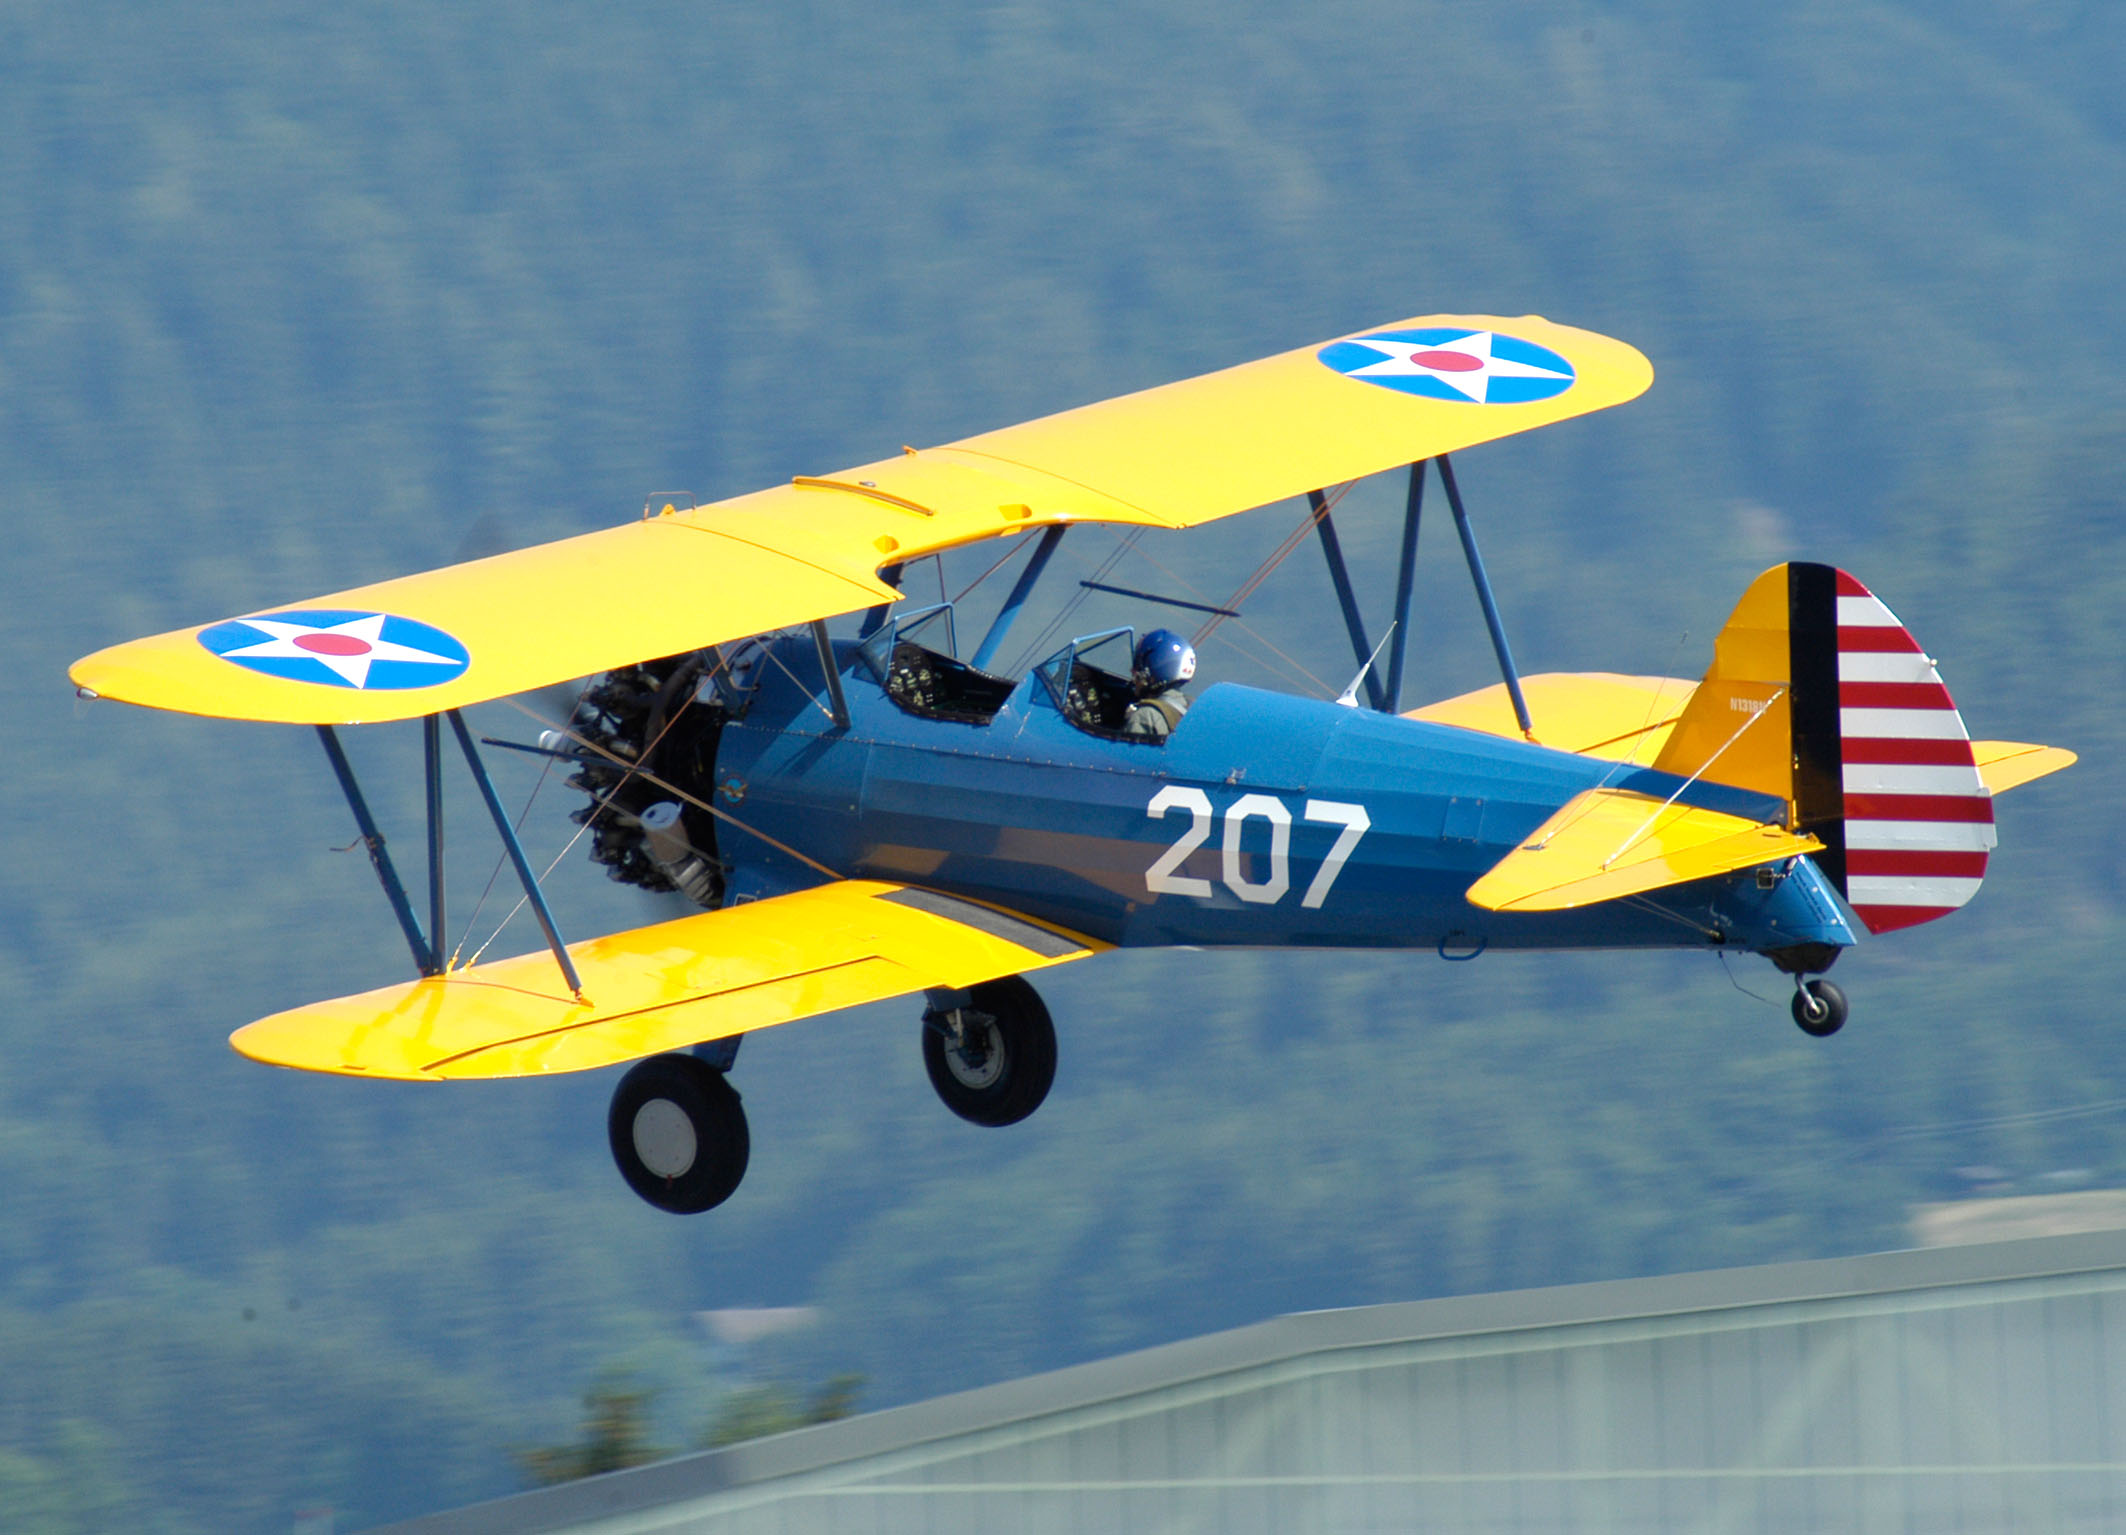 Boeing Stearman aircraft history, performance and specifications